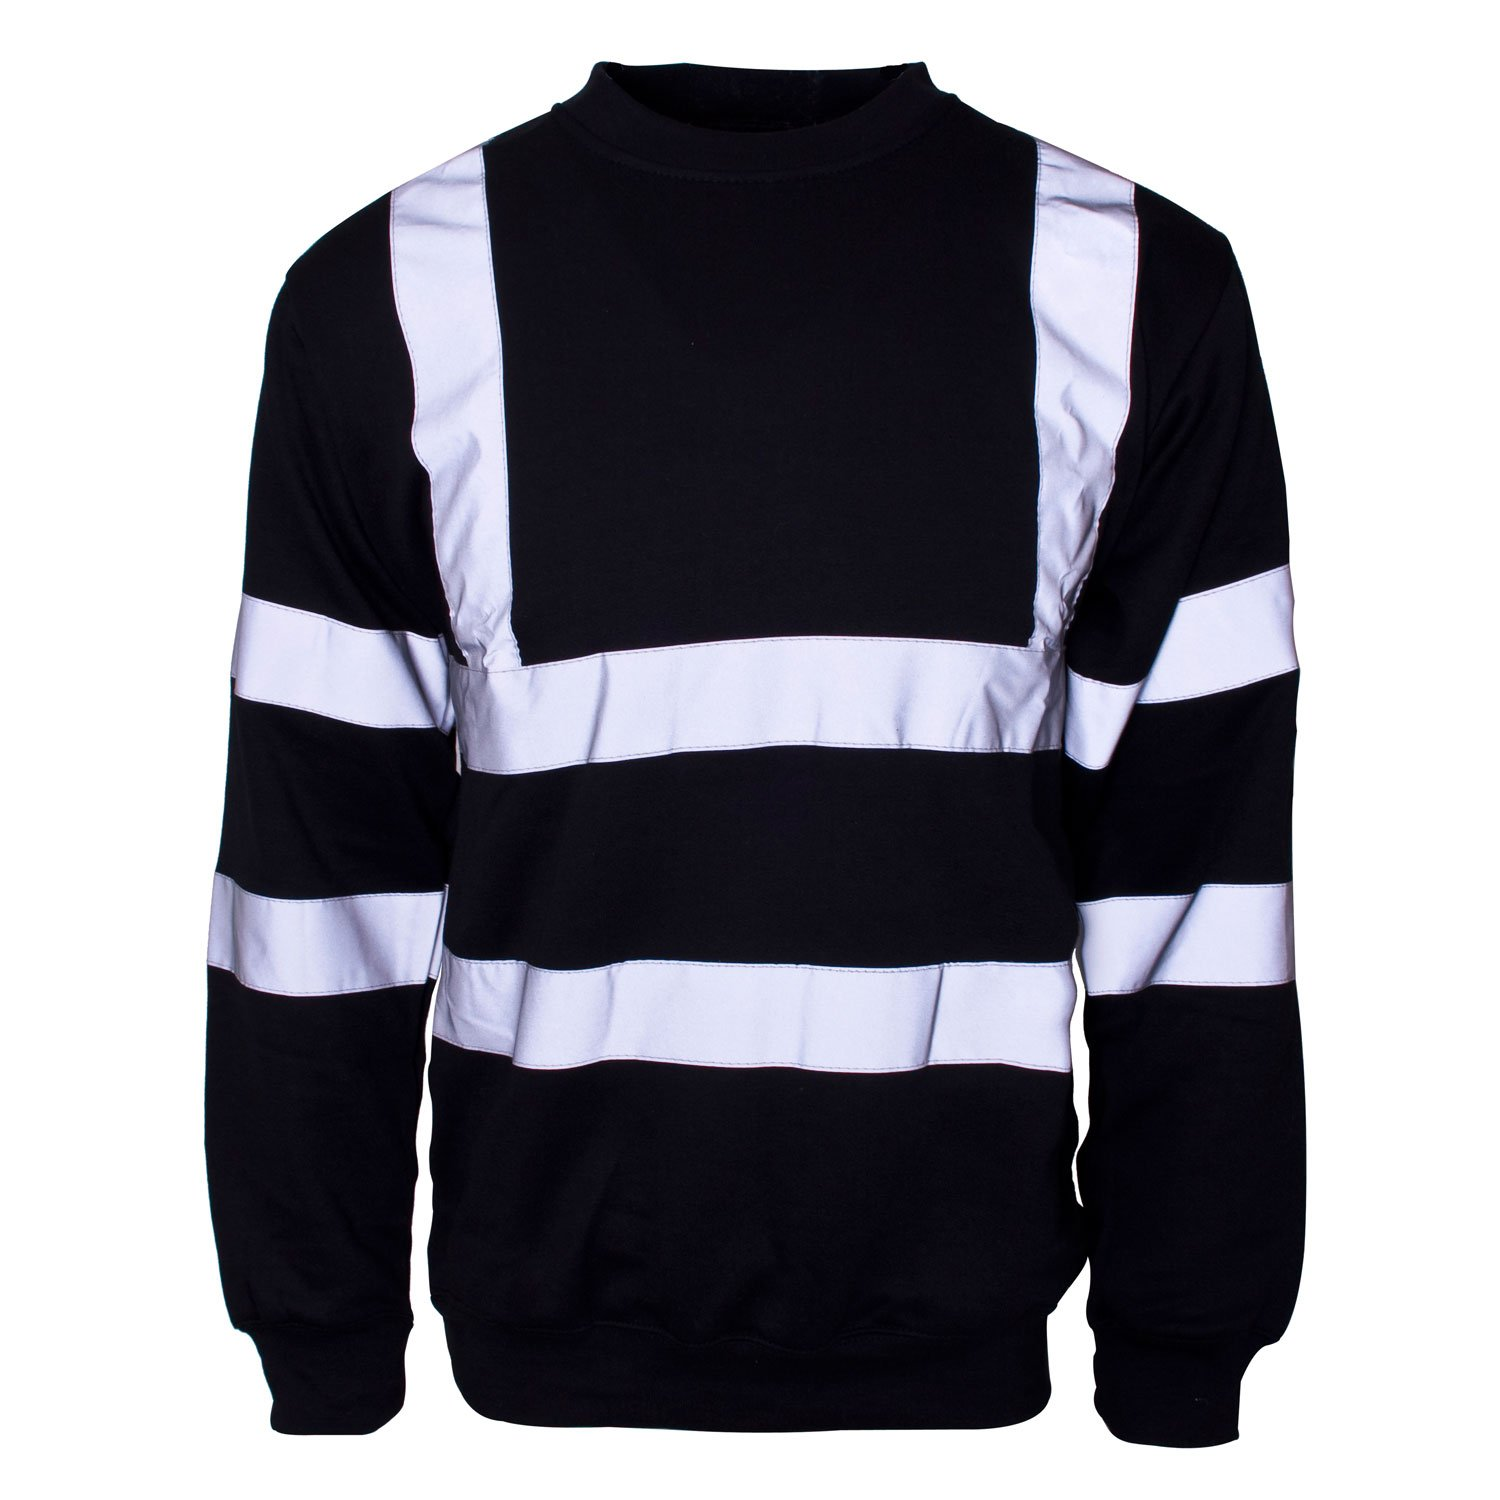 Hi Vis - Navy Sweatshirt with reflective strips, size S - 4XL, security, tradesmen etc. Photo is Black, but the item is Navy